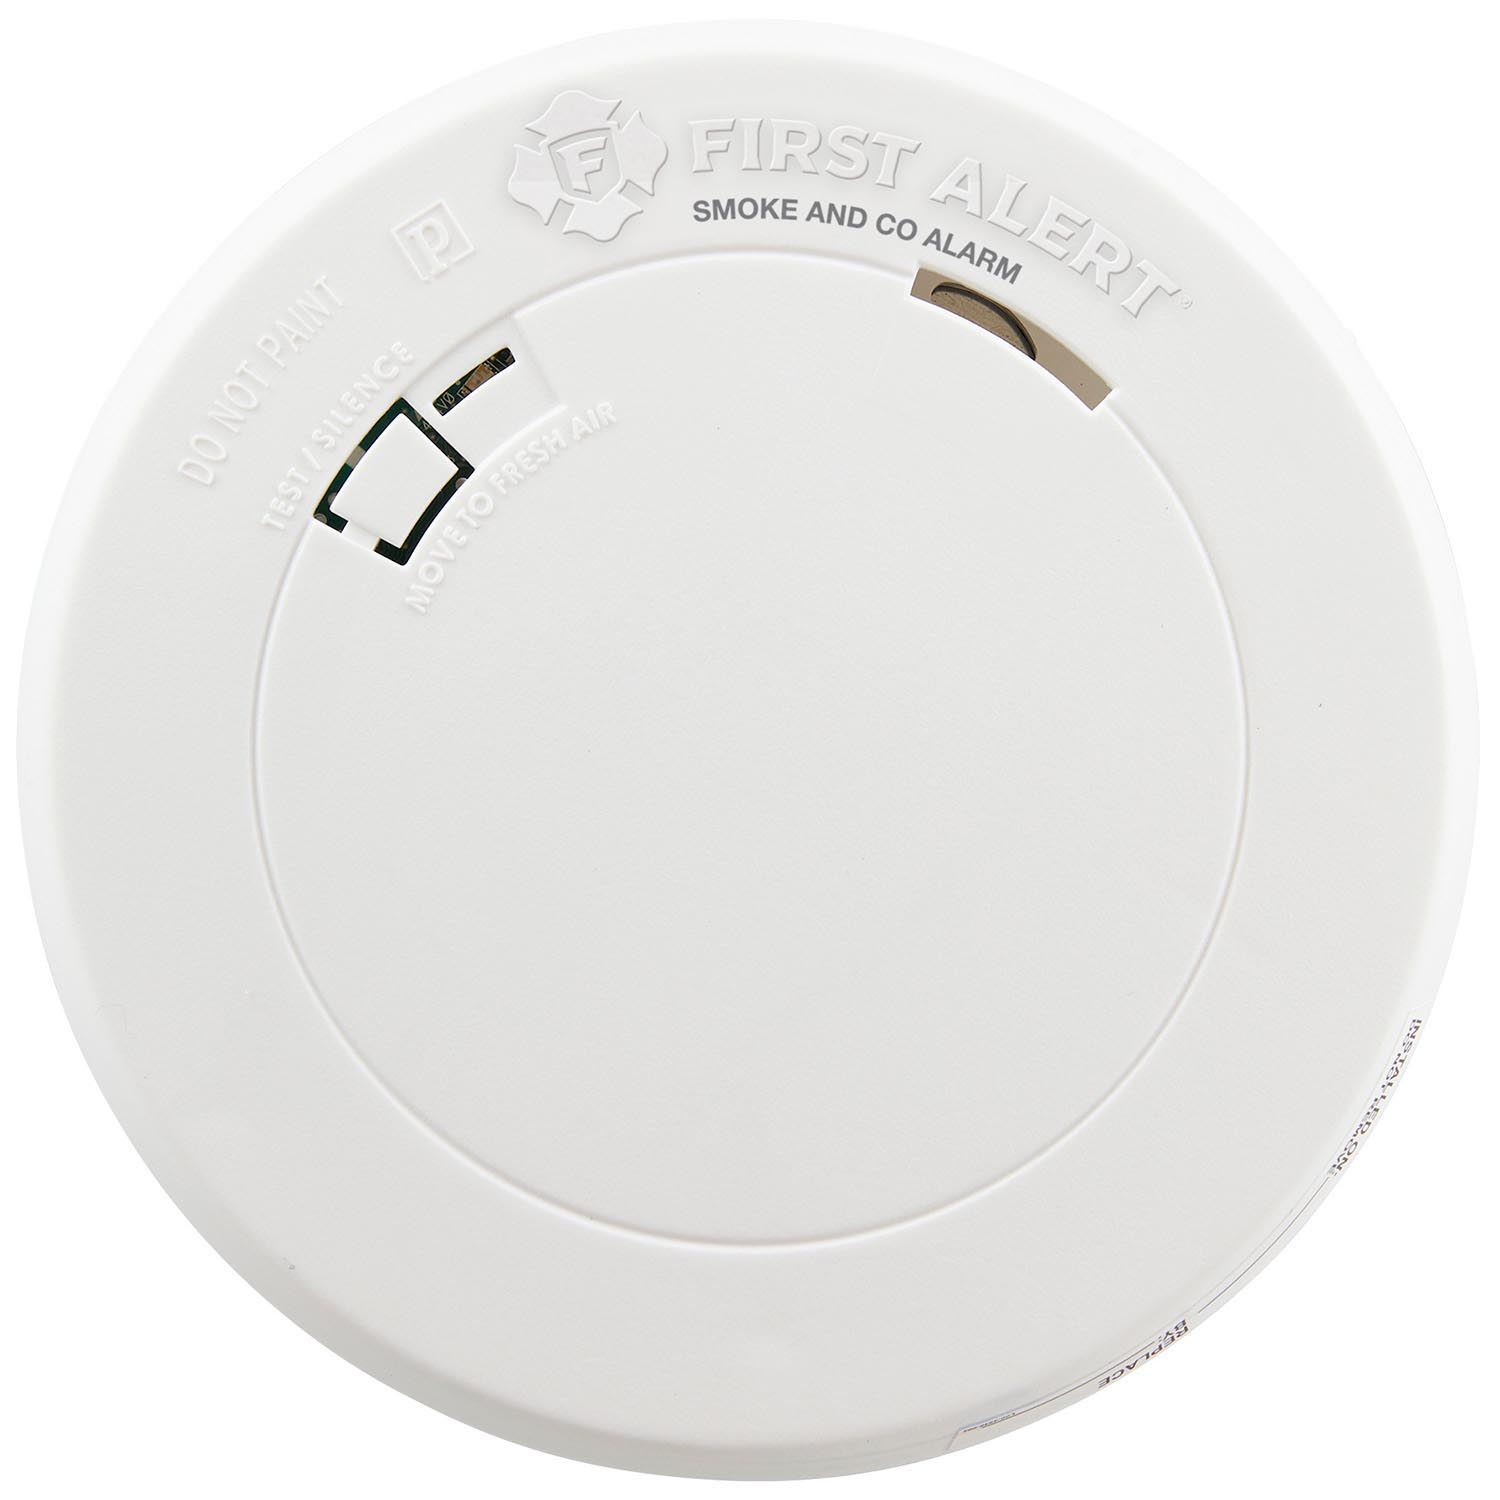 First Alert 10-Year Sealed Battery Combo Photoelectric Smoke & Carbon Monoxide Alarm with Slim Design - PRC710 (1039868)